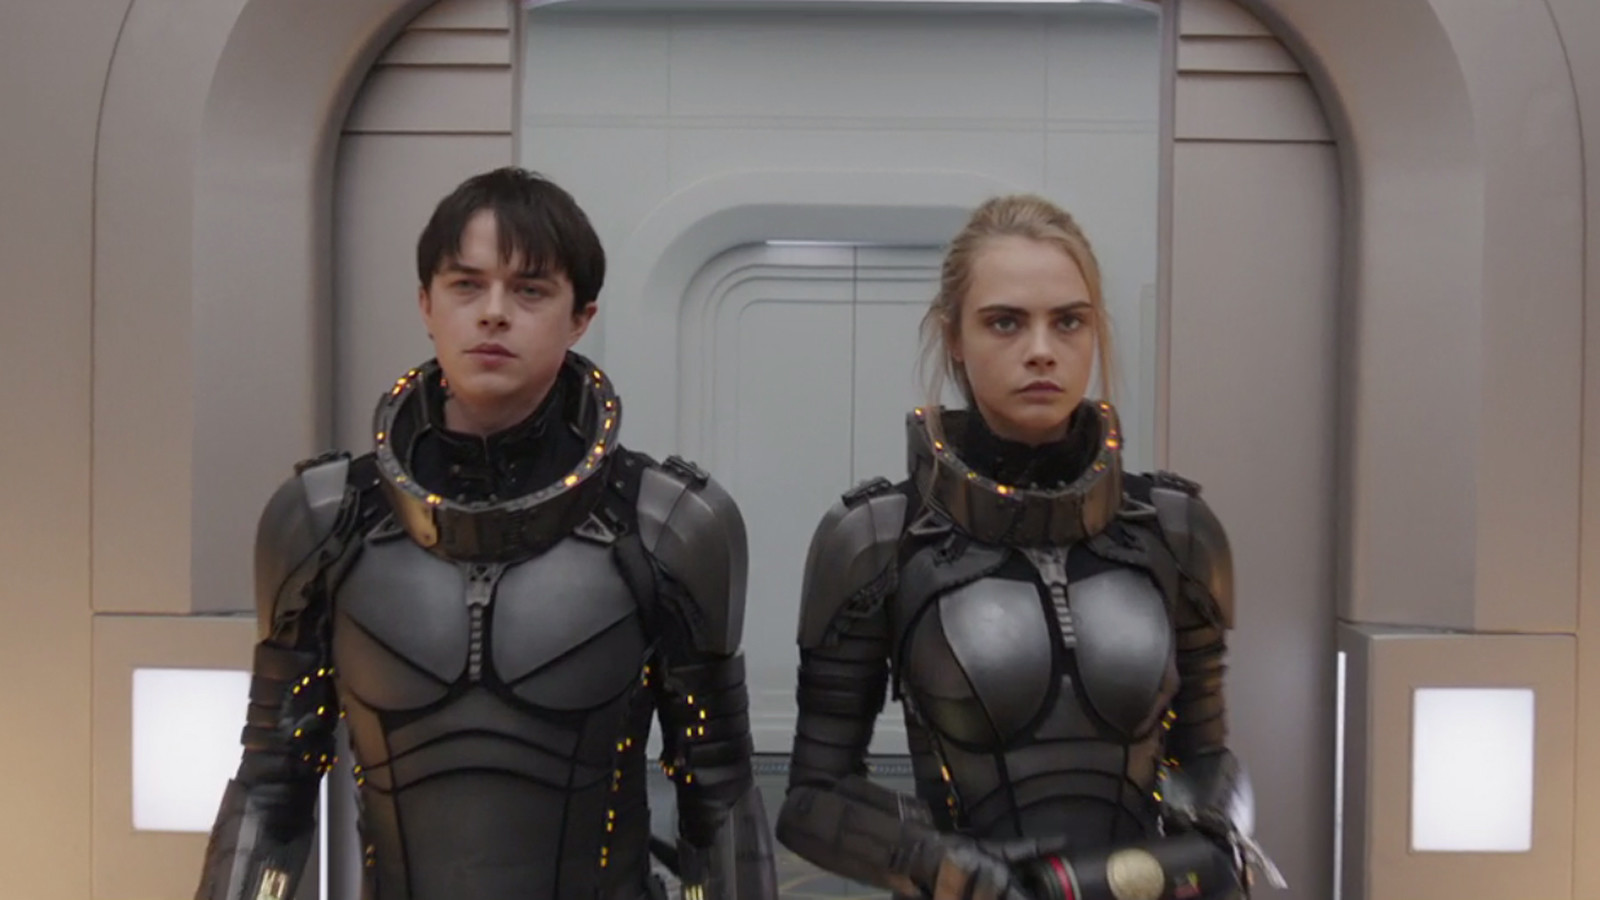 Valerian e la città dei mille pianeti (Valerian and the City of a Thousand Planets) - Valerian (Dane DeHaan) - Laureline (Cara Delevingne)